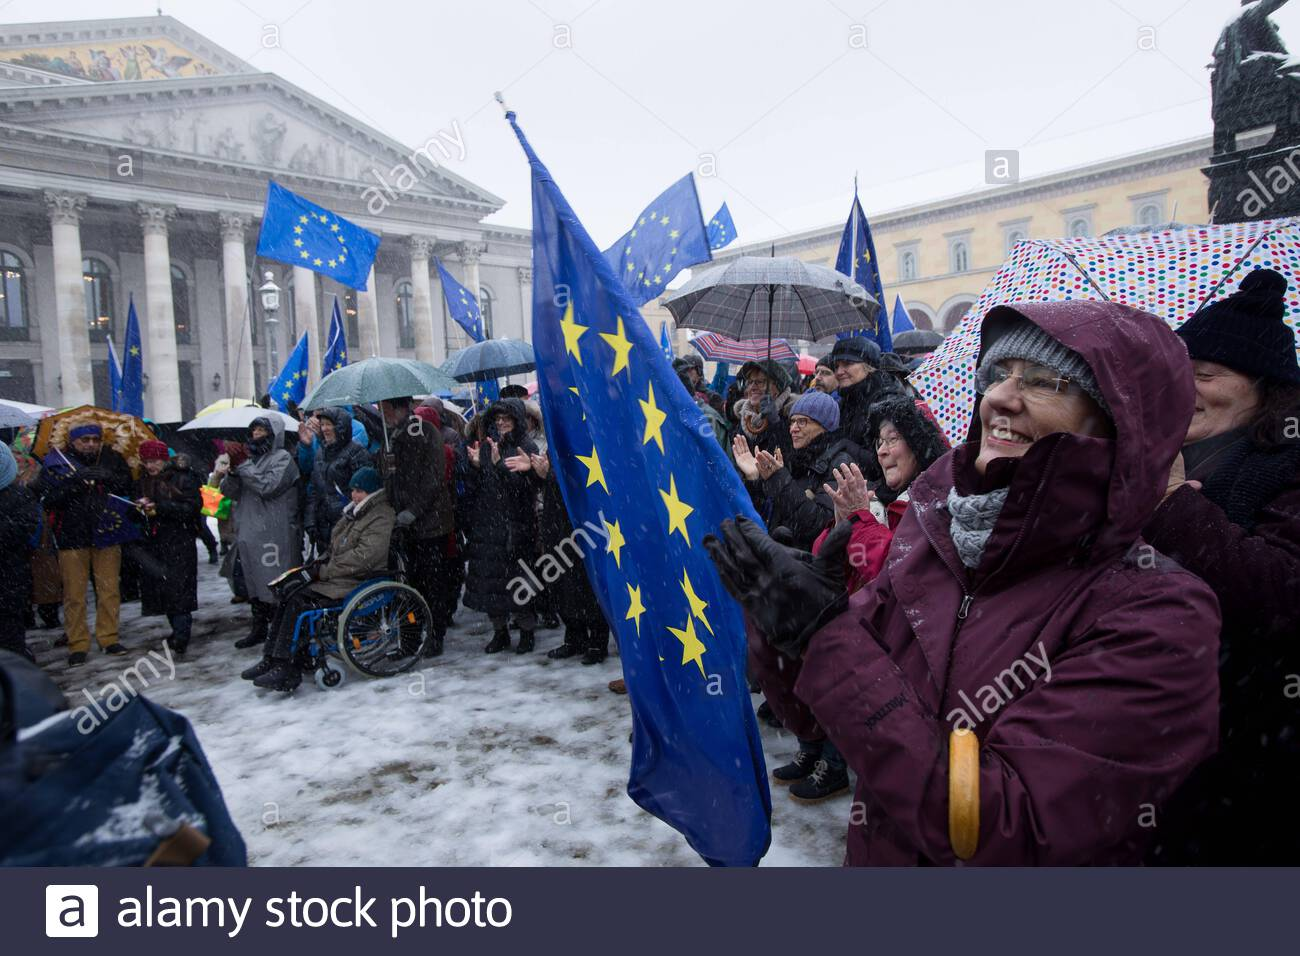 demonstration of the pro european citizens movement pulse of europe in the snowstorm on munichs max joseph platz automated translation 2ABKJXT